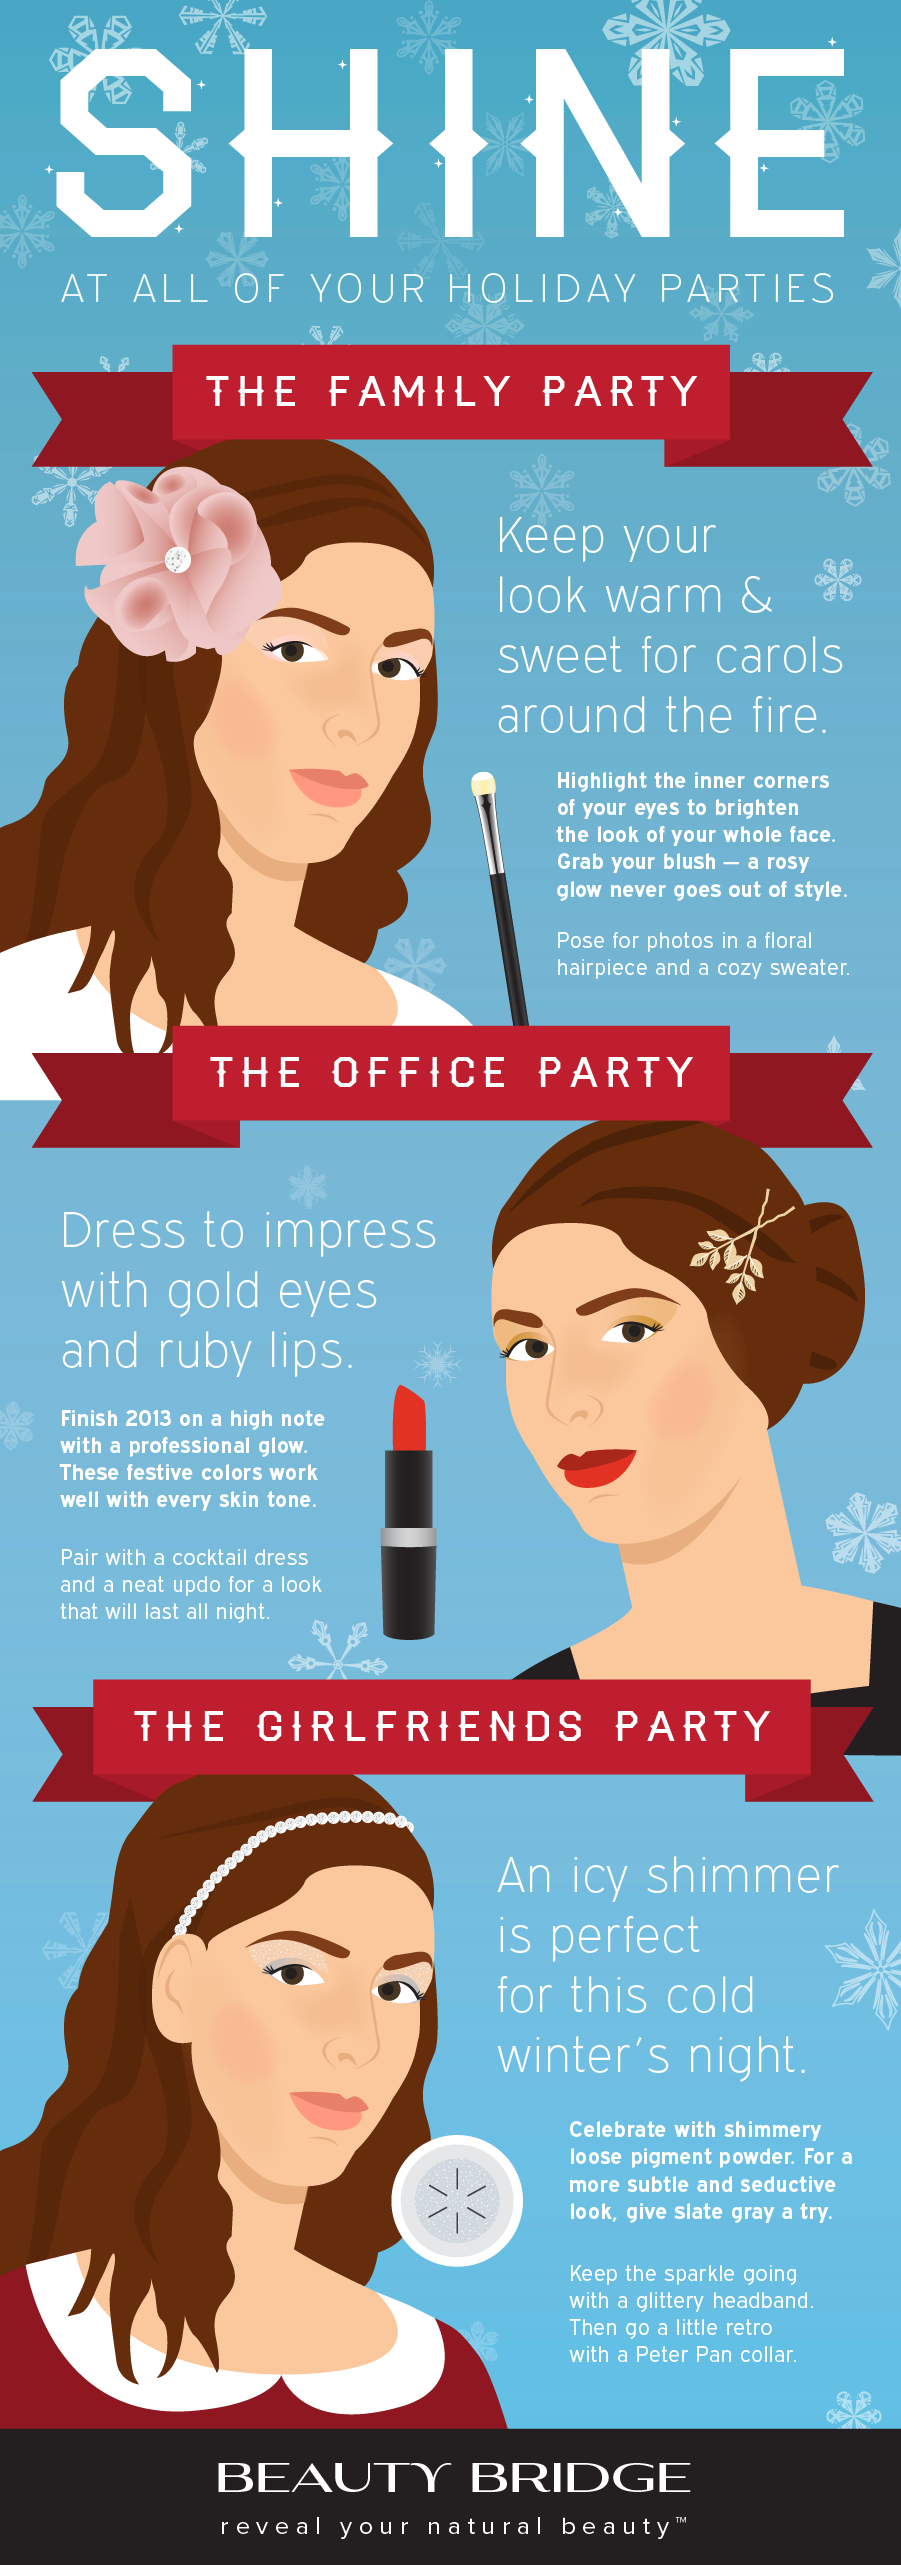 Shine at All of Your Holiday Parties